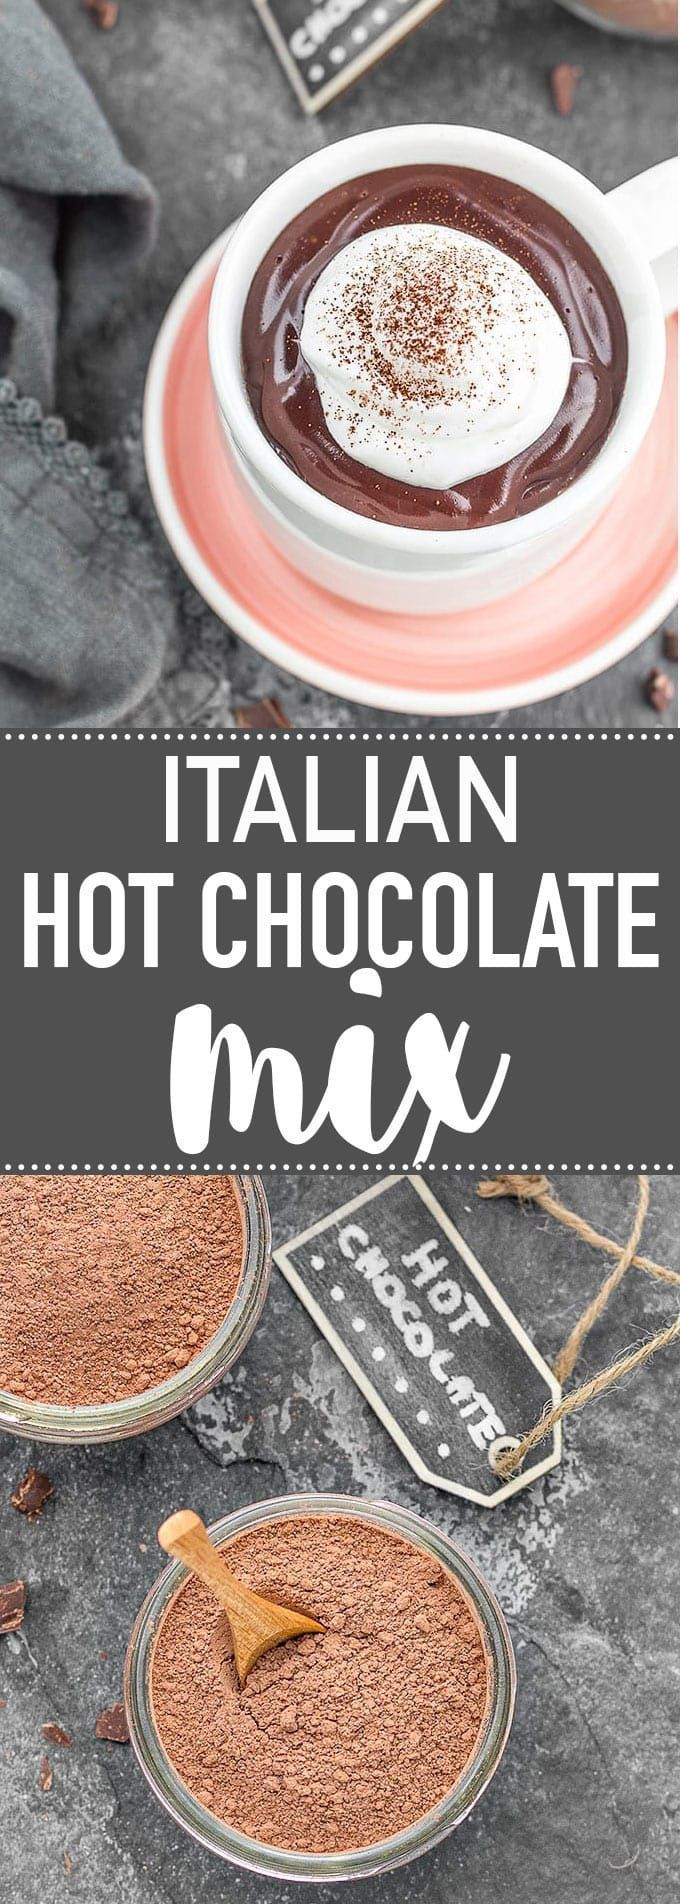 This Italian hot chocolate mix is extra thick, creamy and SO delicious! Make a big batch and wrap it in jars to give as gifts to friends and family! via /easyasapplepie/